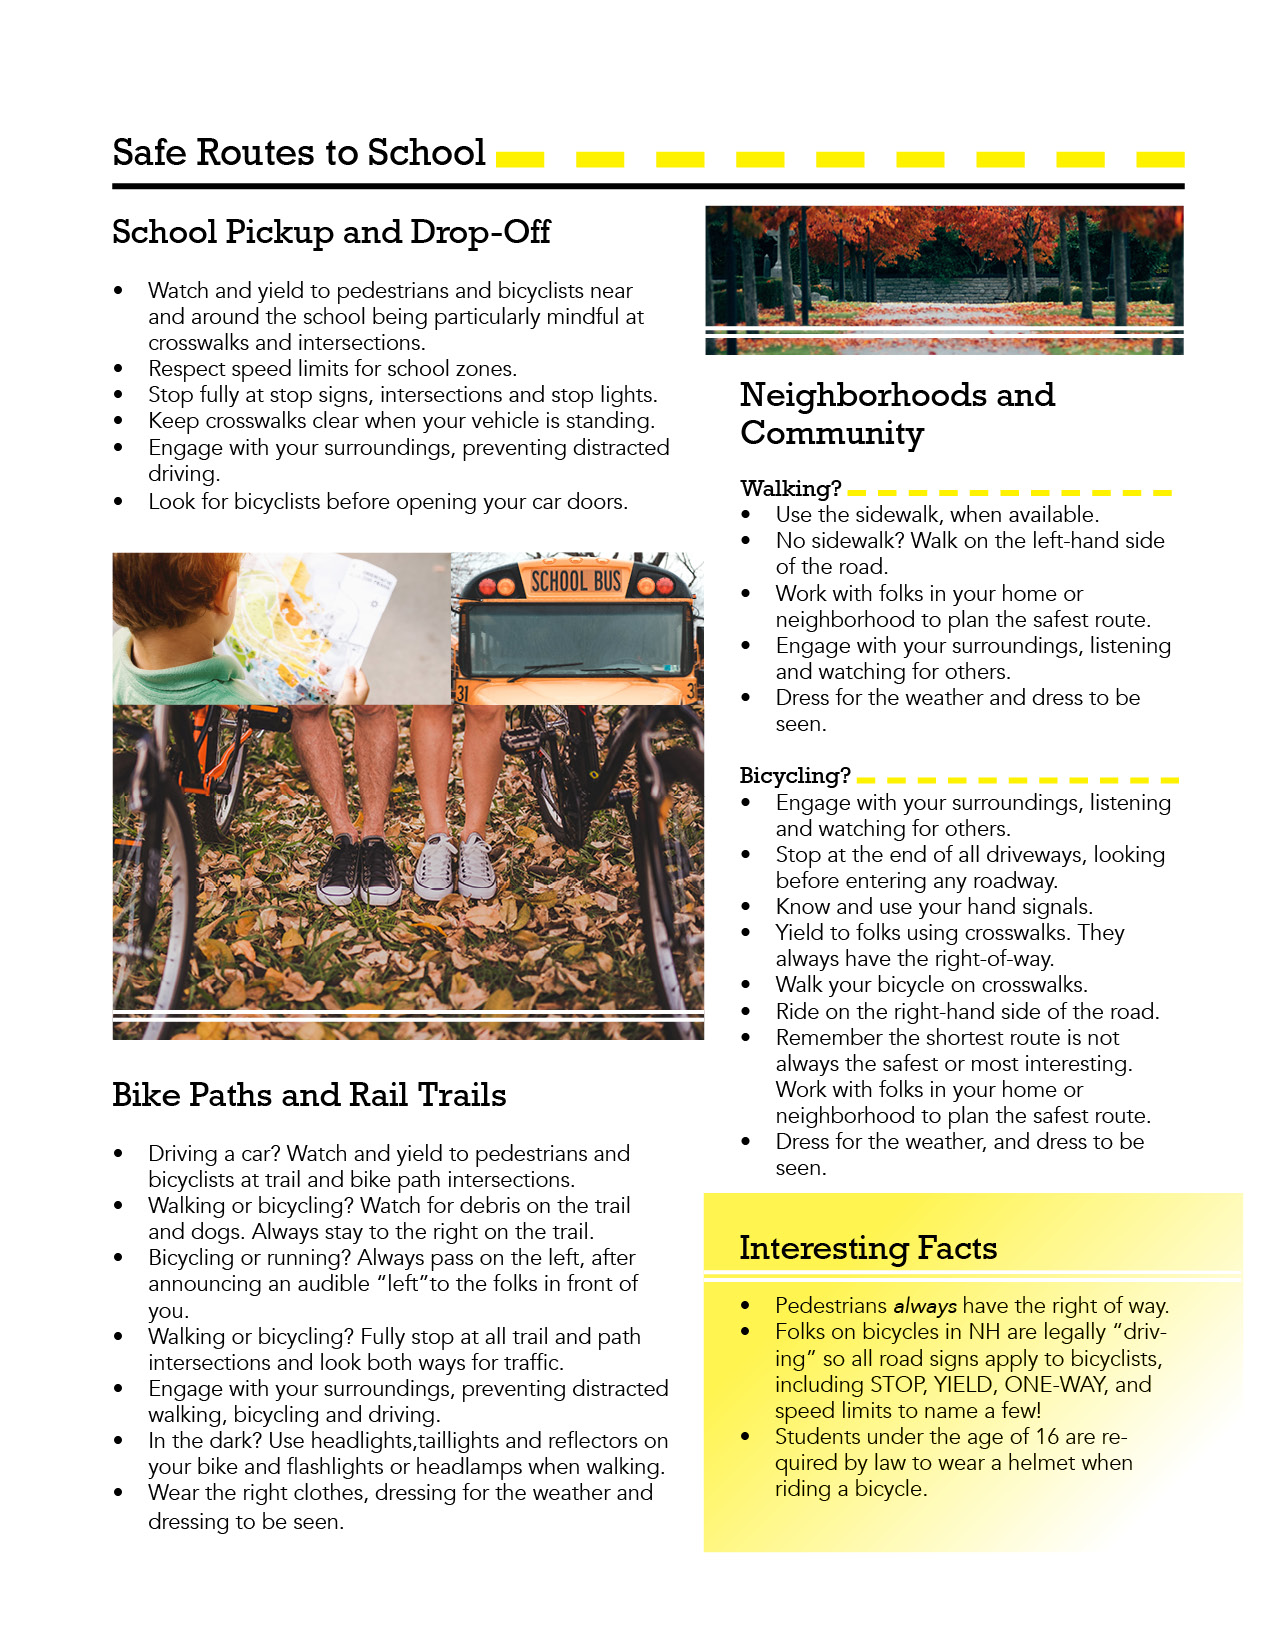 Safe Routes to School Student Handout15.jpg